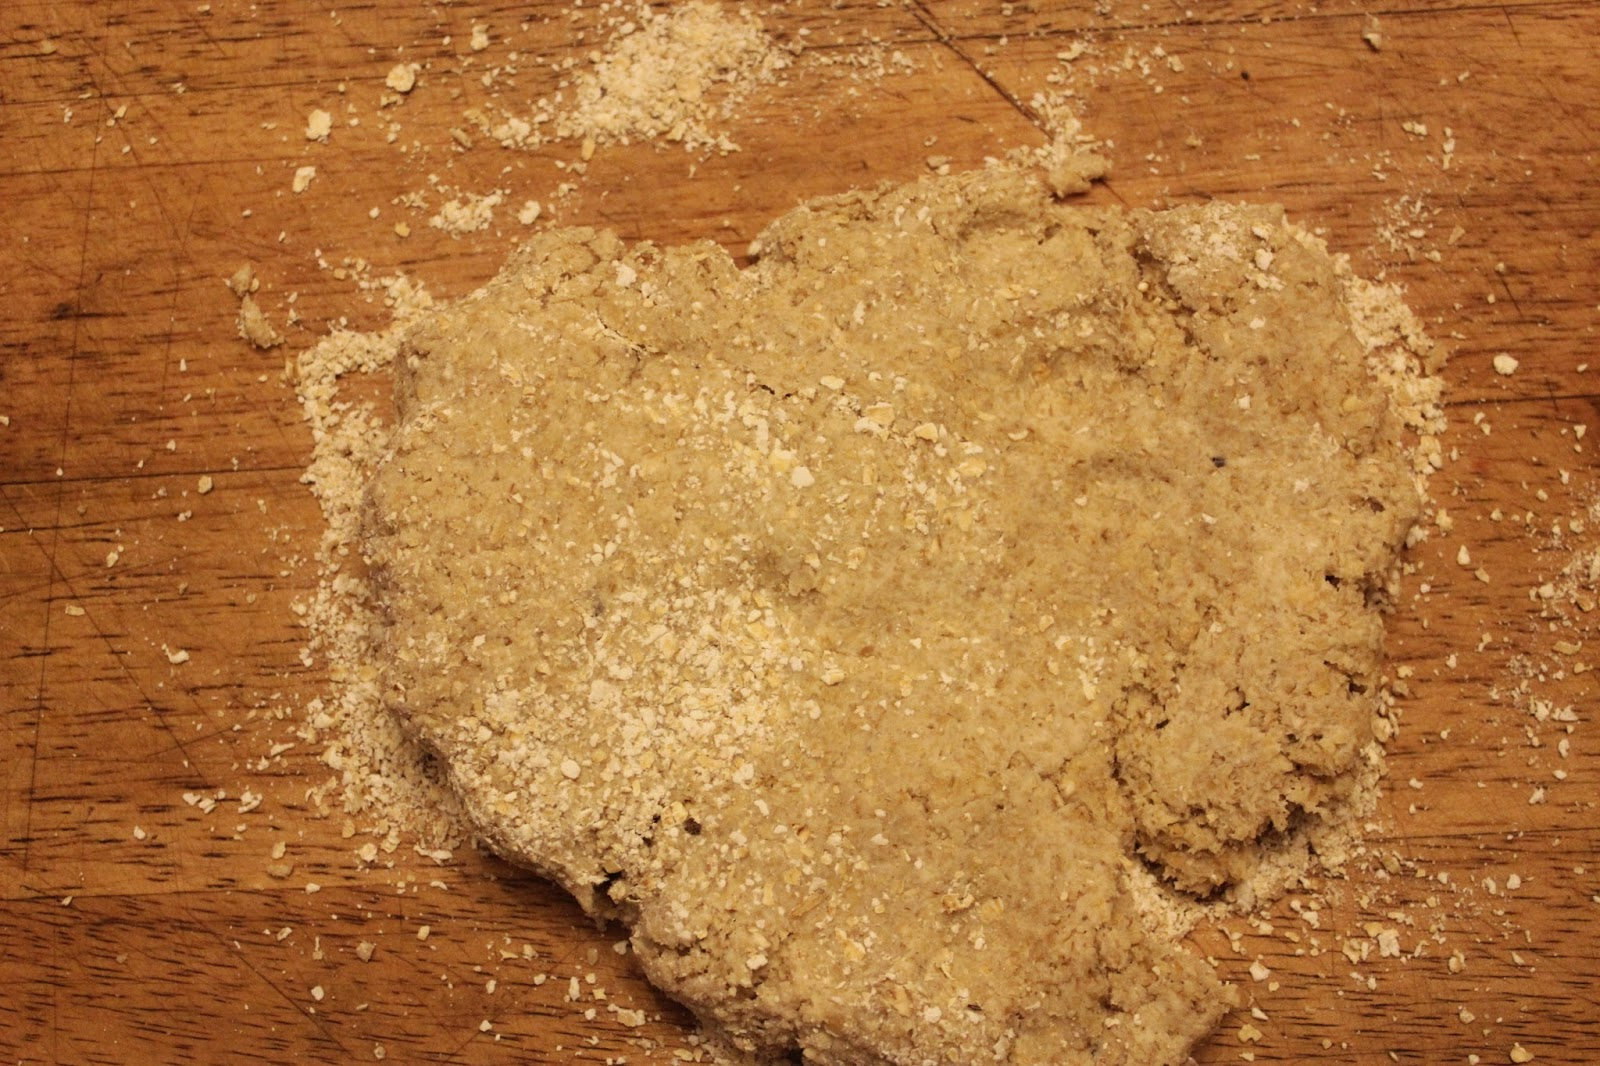 Kneaded dough for organic Scottish oatcakes